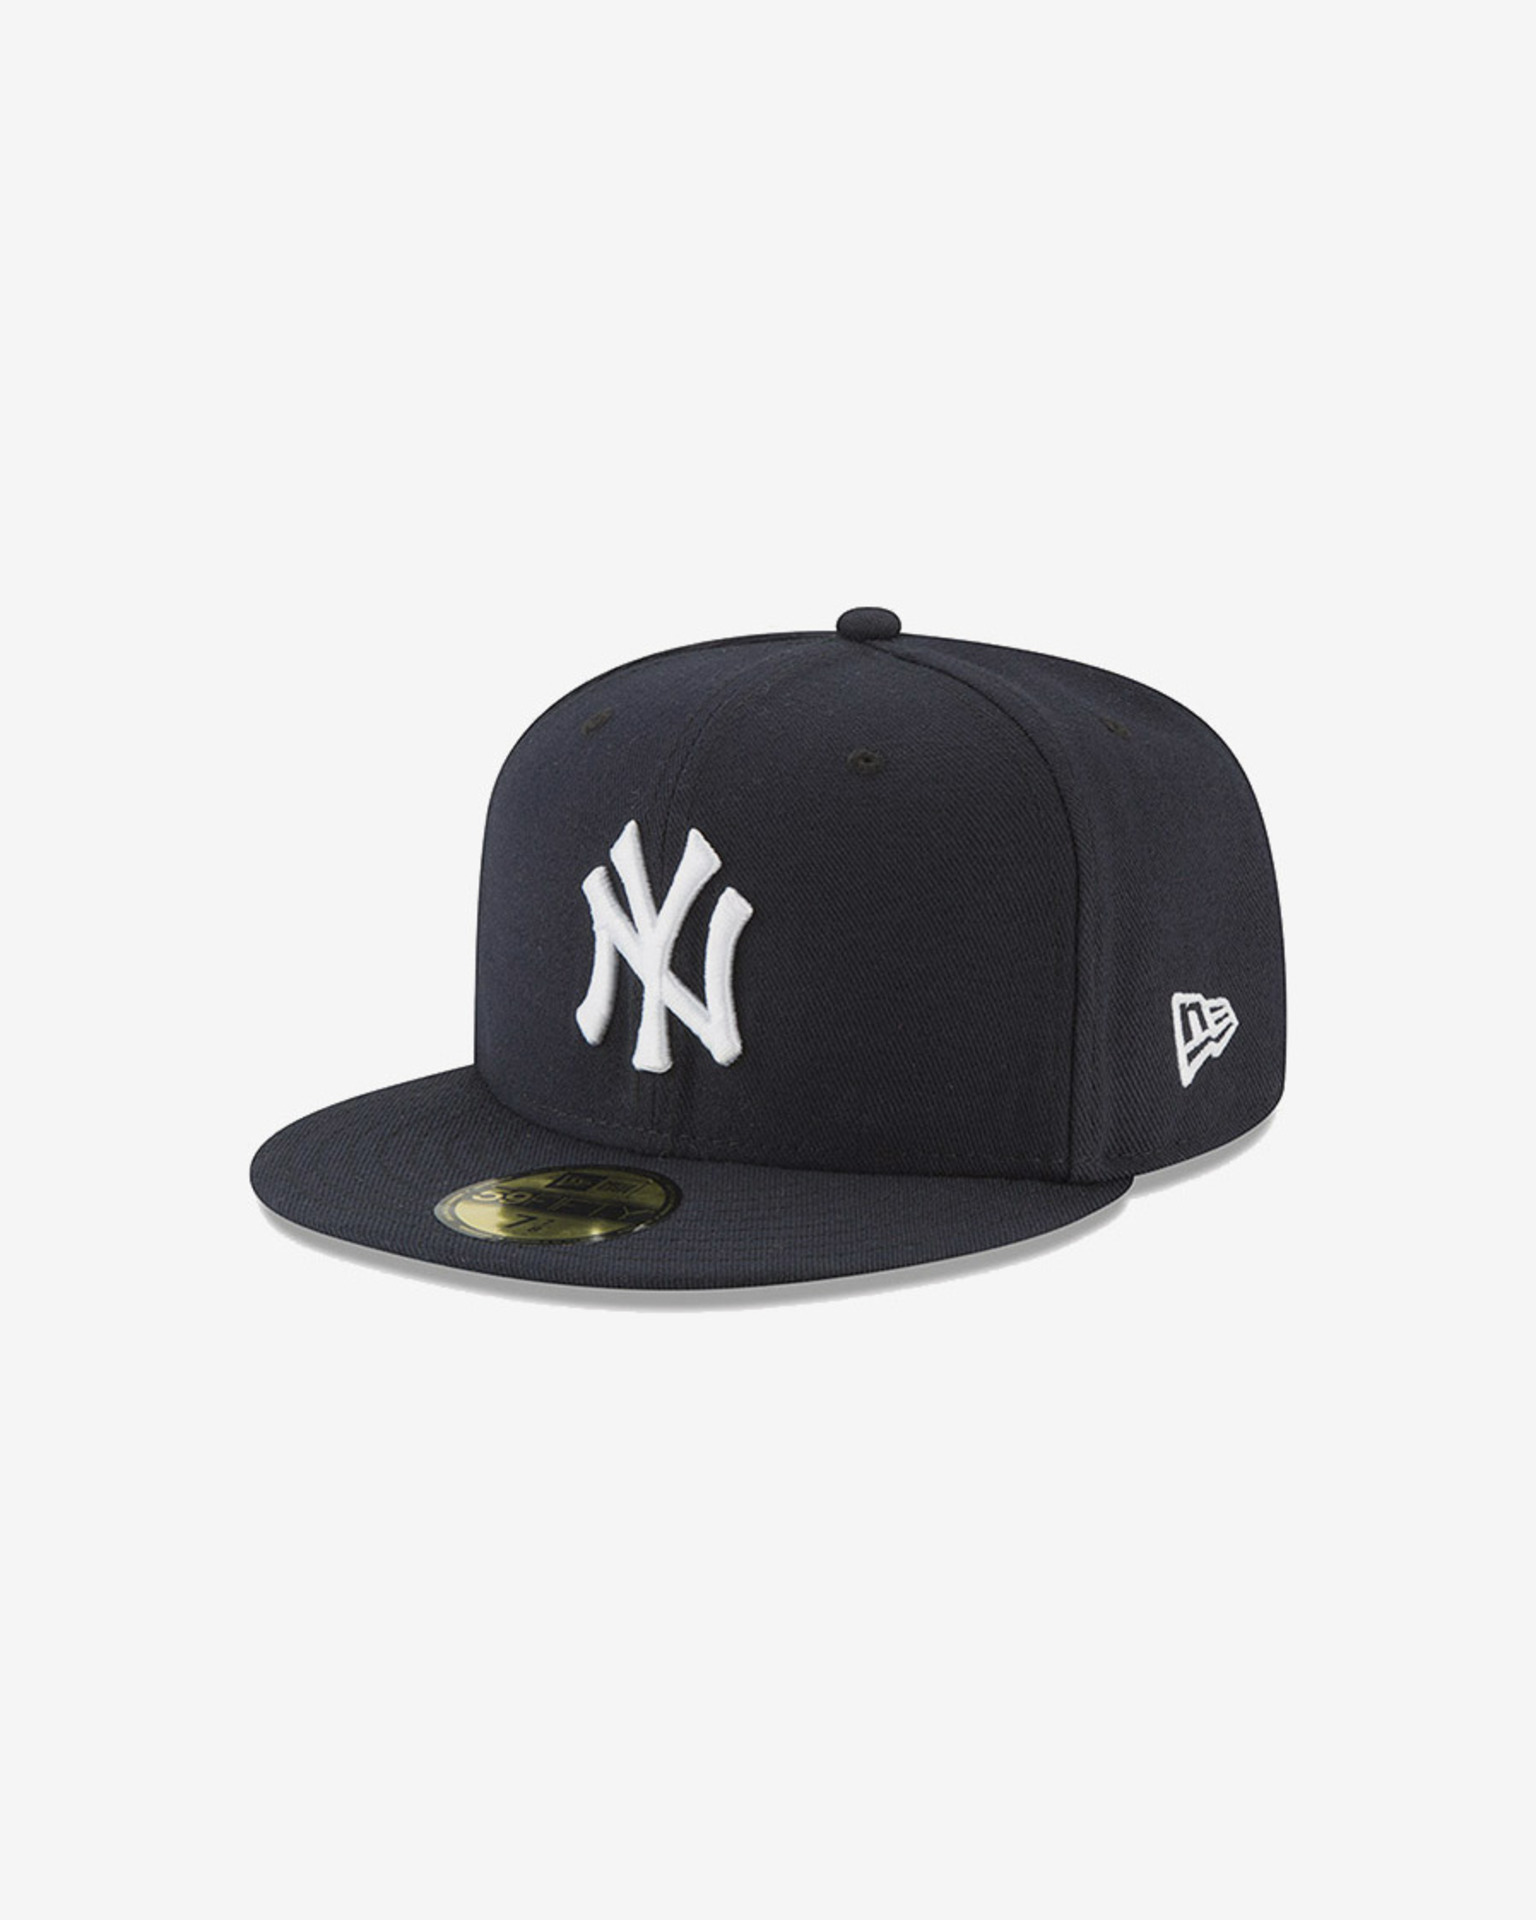 New York Yankees Authentic 59FIFTY Kšiltovka New Era